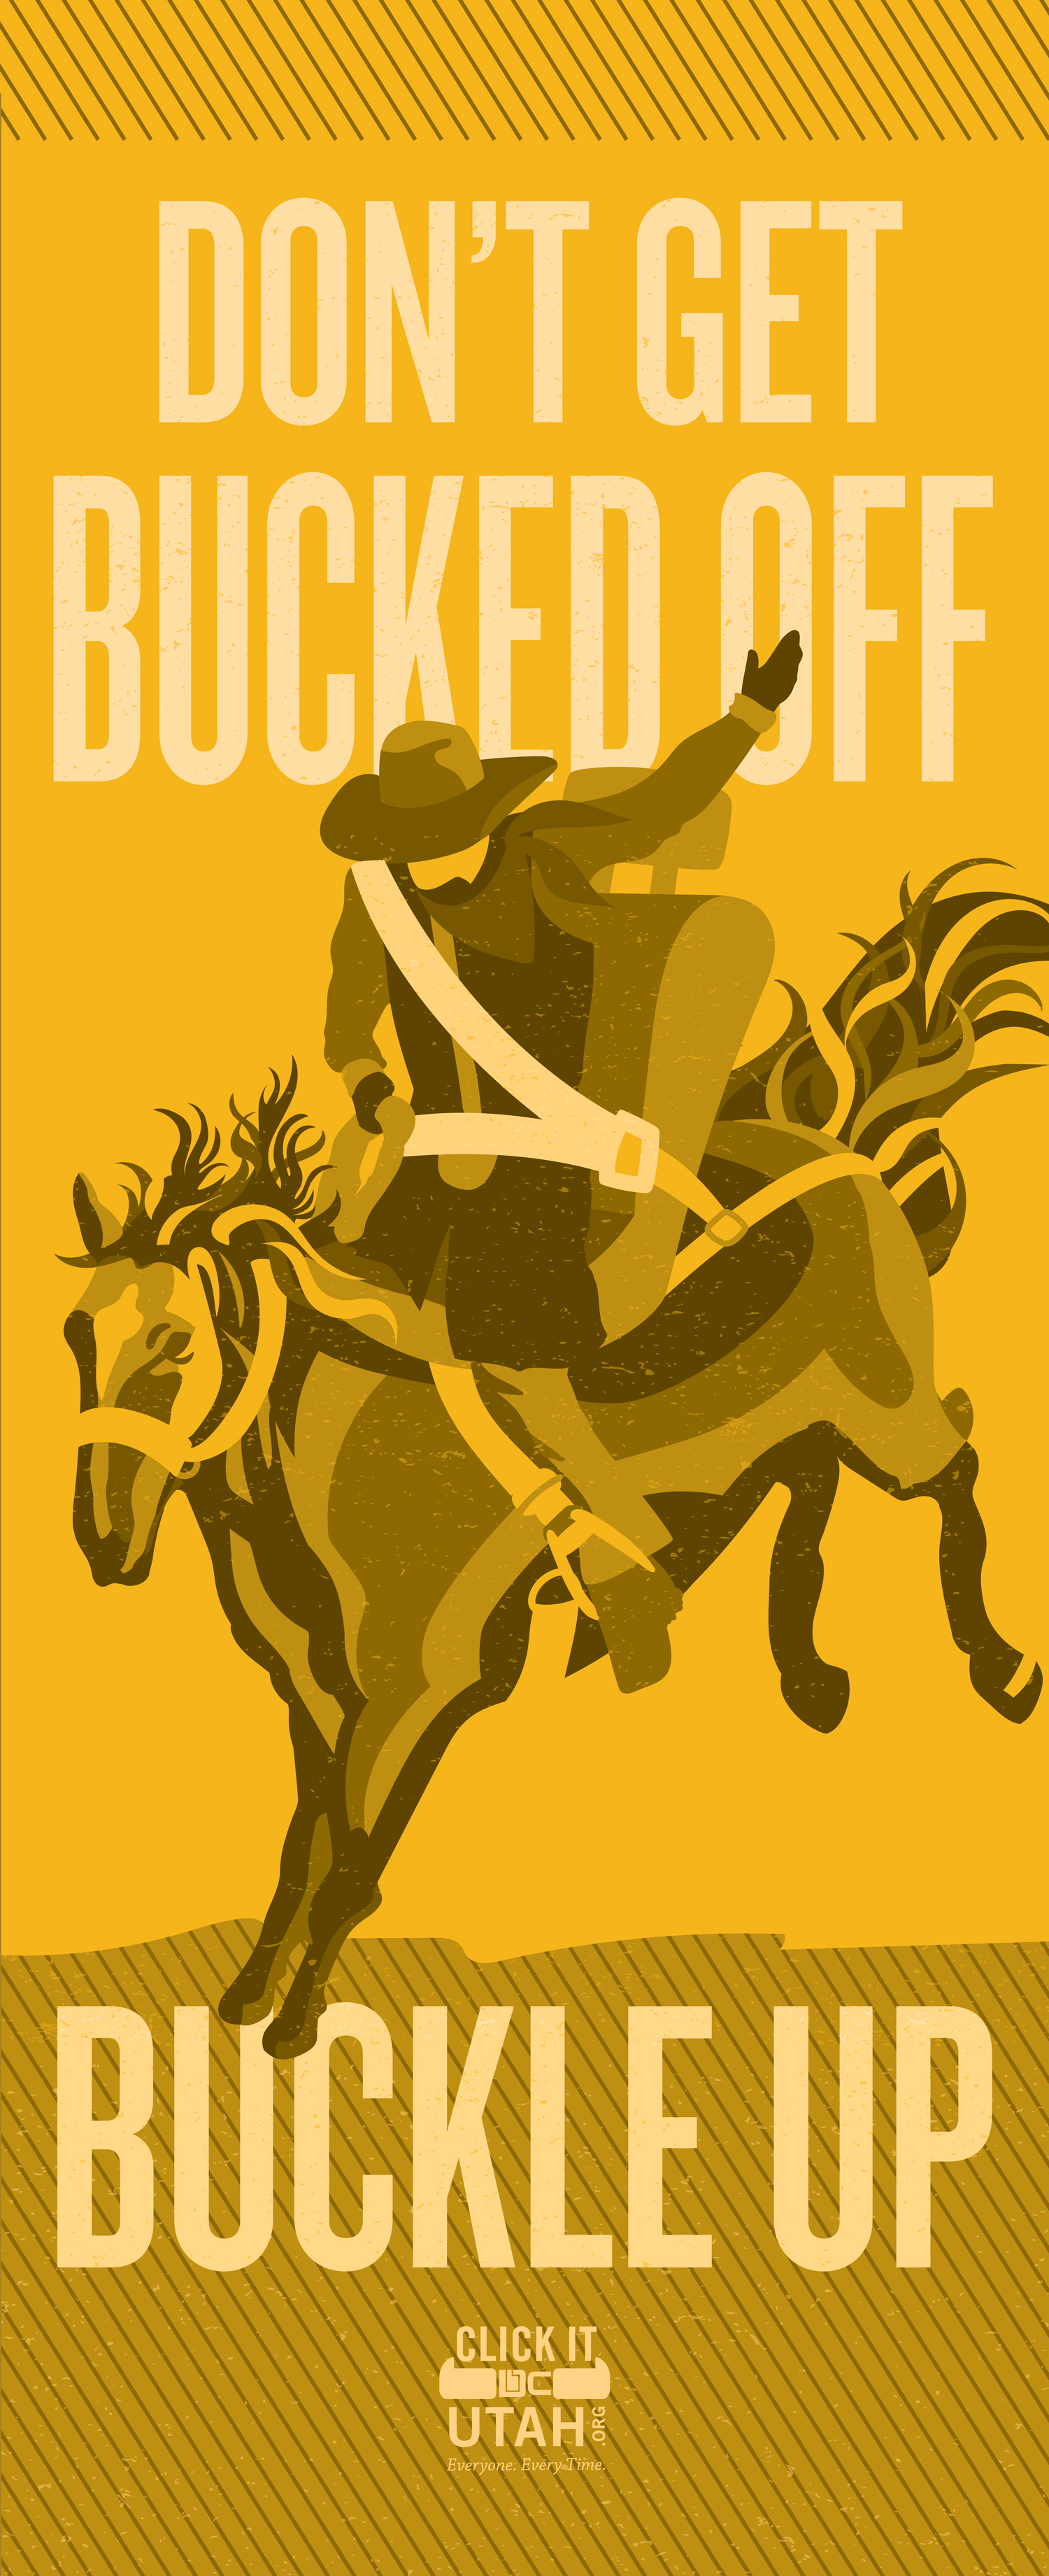 Graphic of a cowboy riding a rodeo horse with text - don't get bucked off. Buckle up.